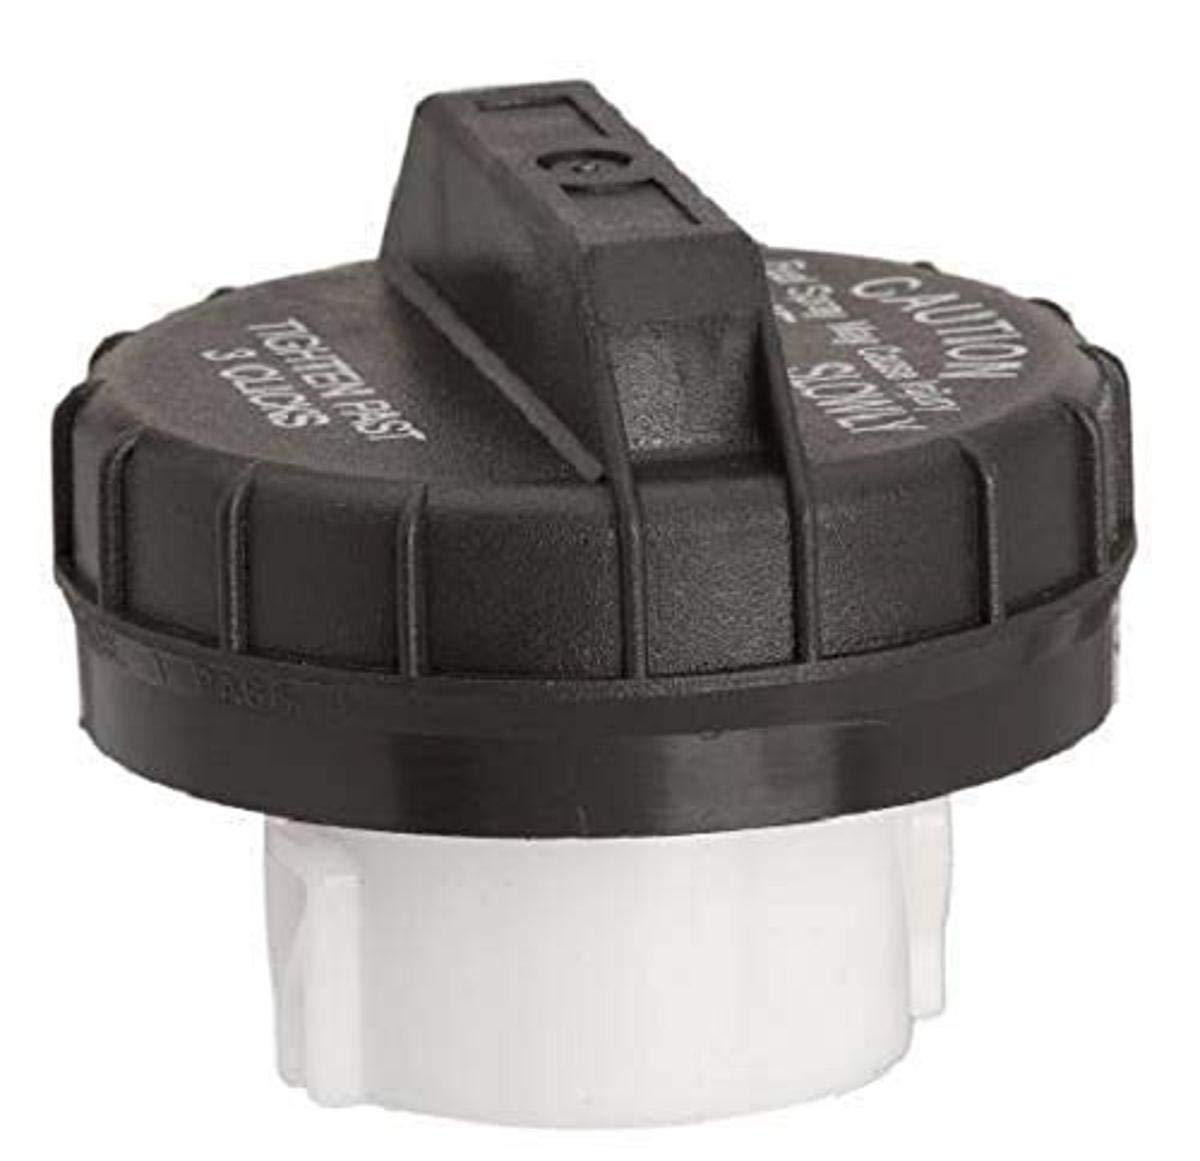 Stant OE Equivalent Fuel Cap, black